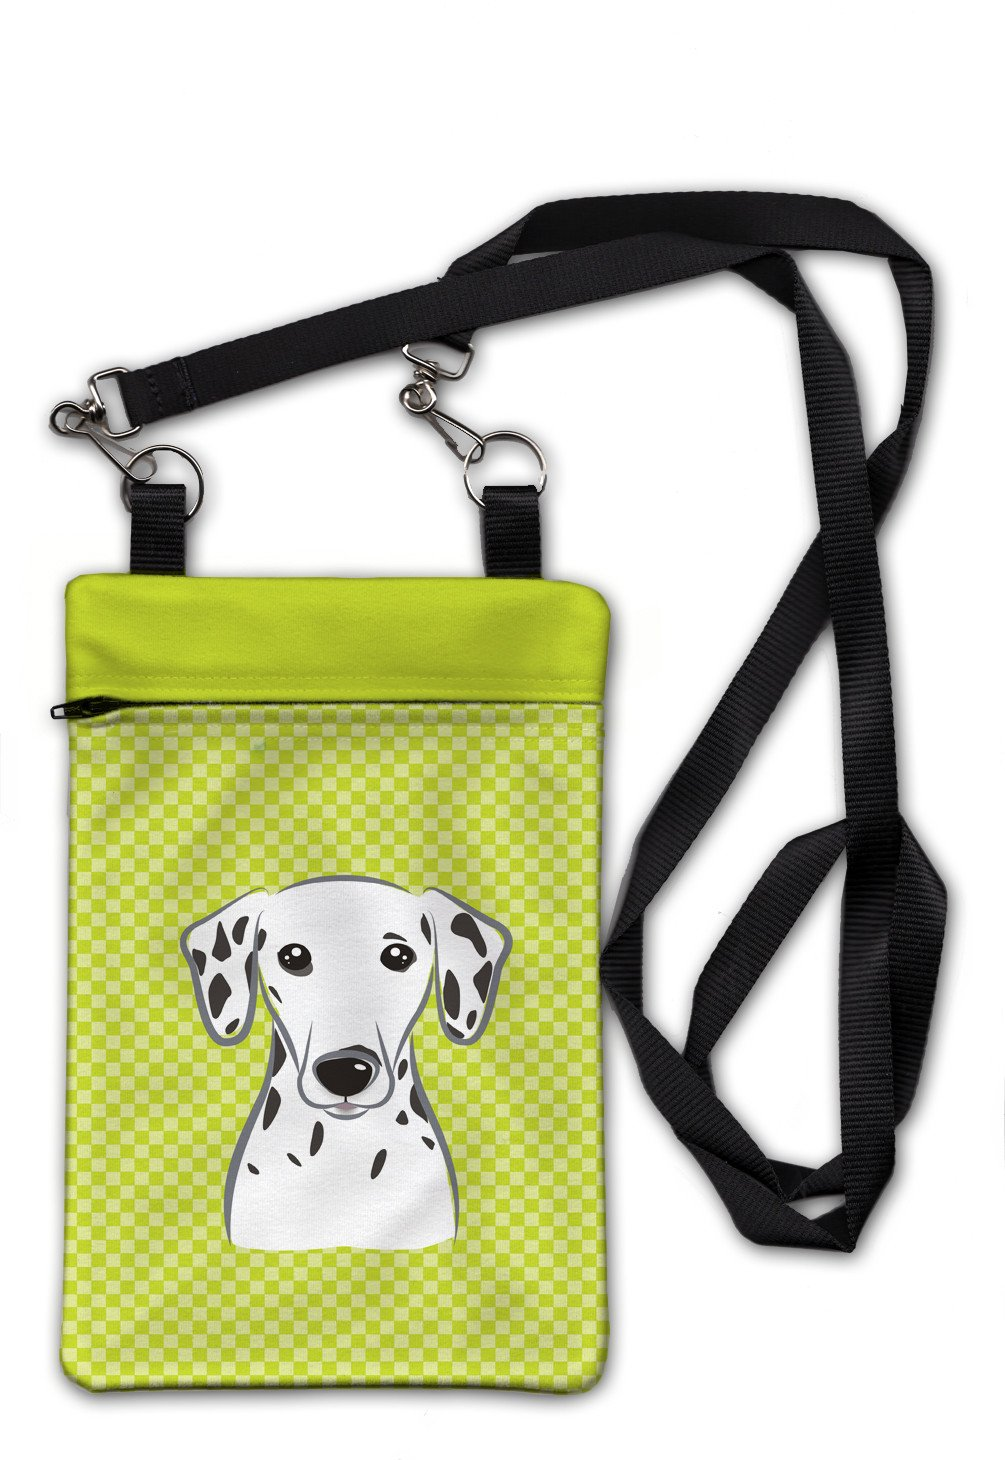 Checkerboard Lime Green Dalmatian Crossbody Bag Purse BB1272OBDY by Caroline's Treasures